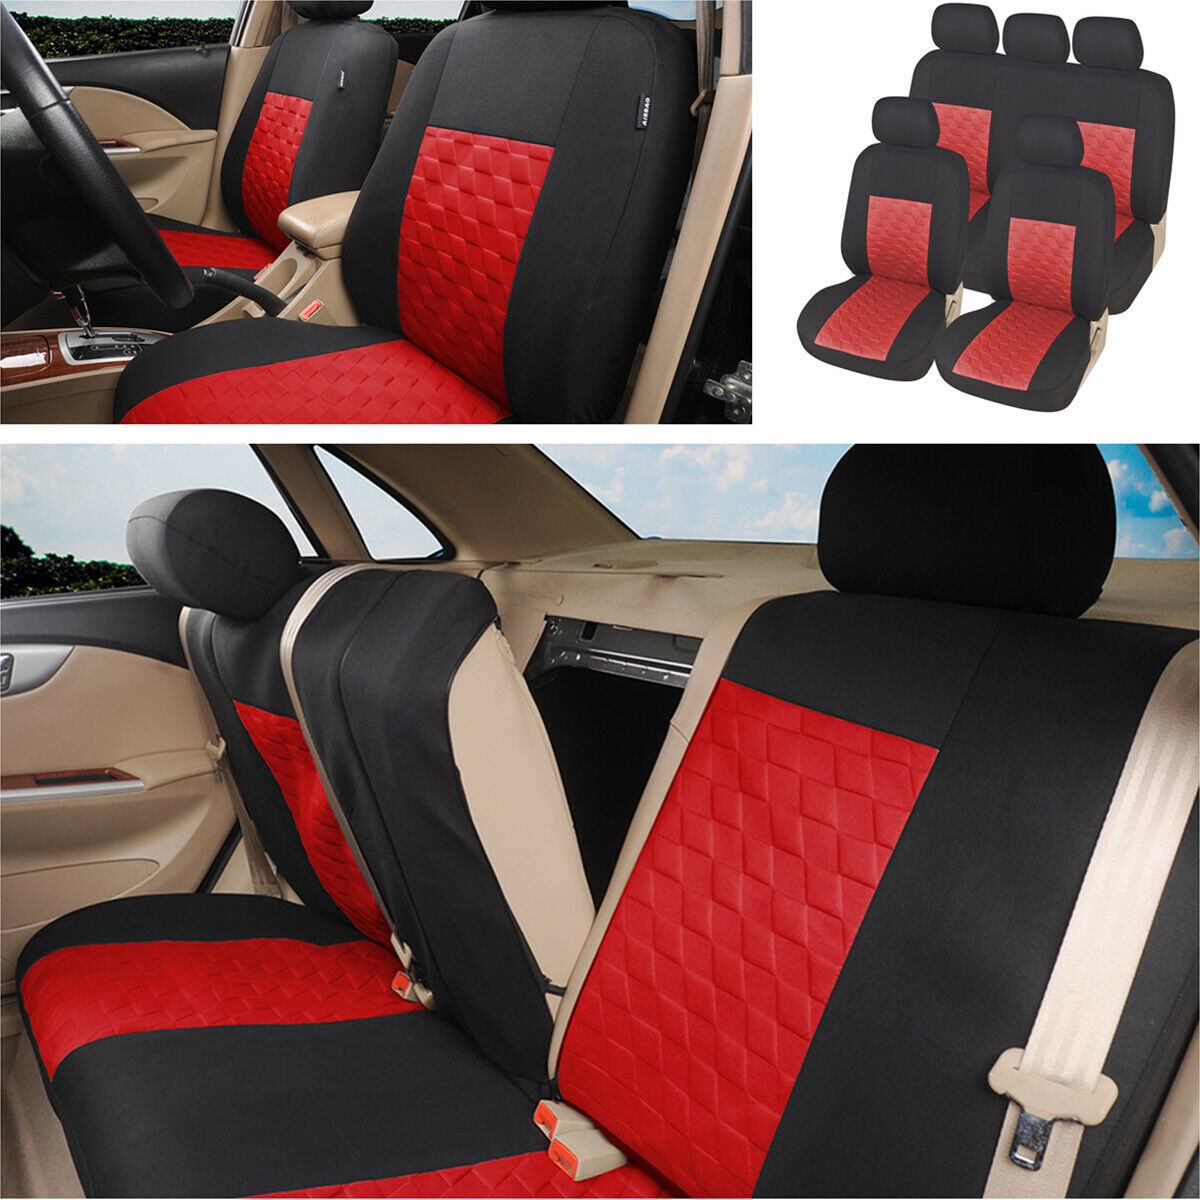 Polyester Car Seat Cover 9PCS Protector Cover Fit for Nissan Rogue Sentra Kicks